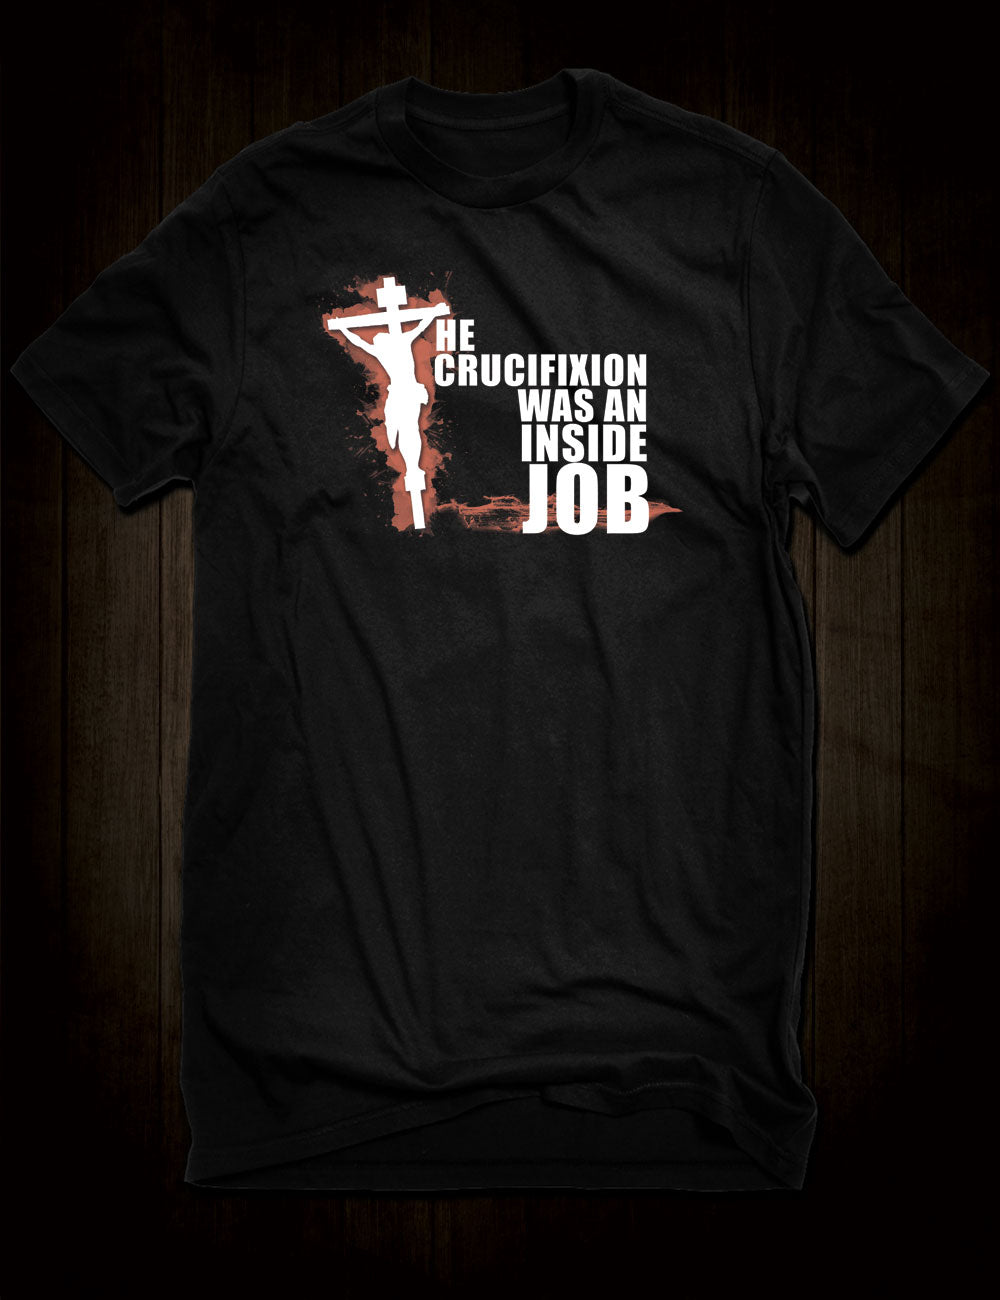 Inside Job Funny T-Shirt